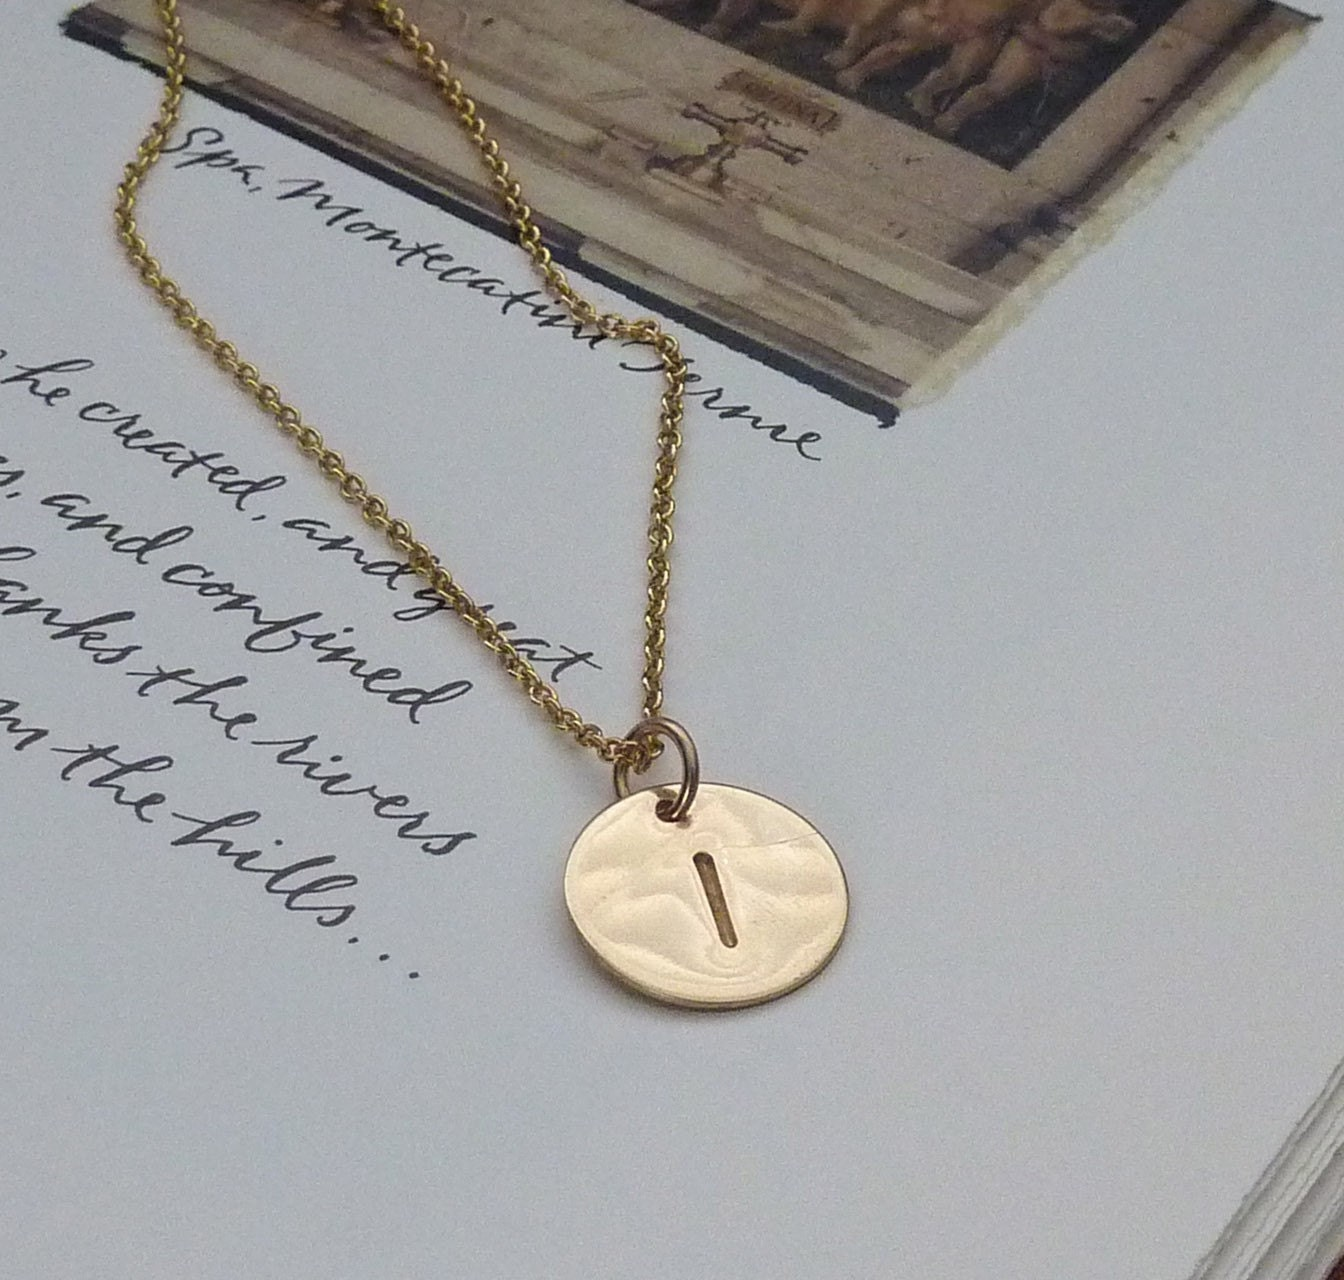 Take It Personal - Initial Charm Necklace in 14K Goldfill, Graduation gift, m. frances Jewelry